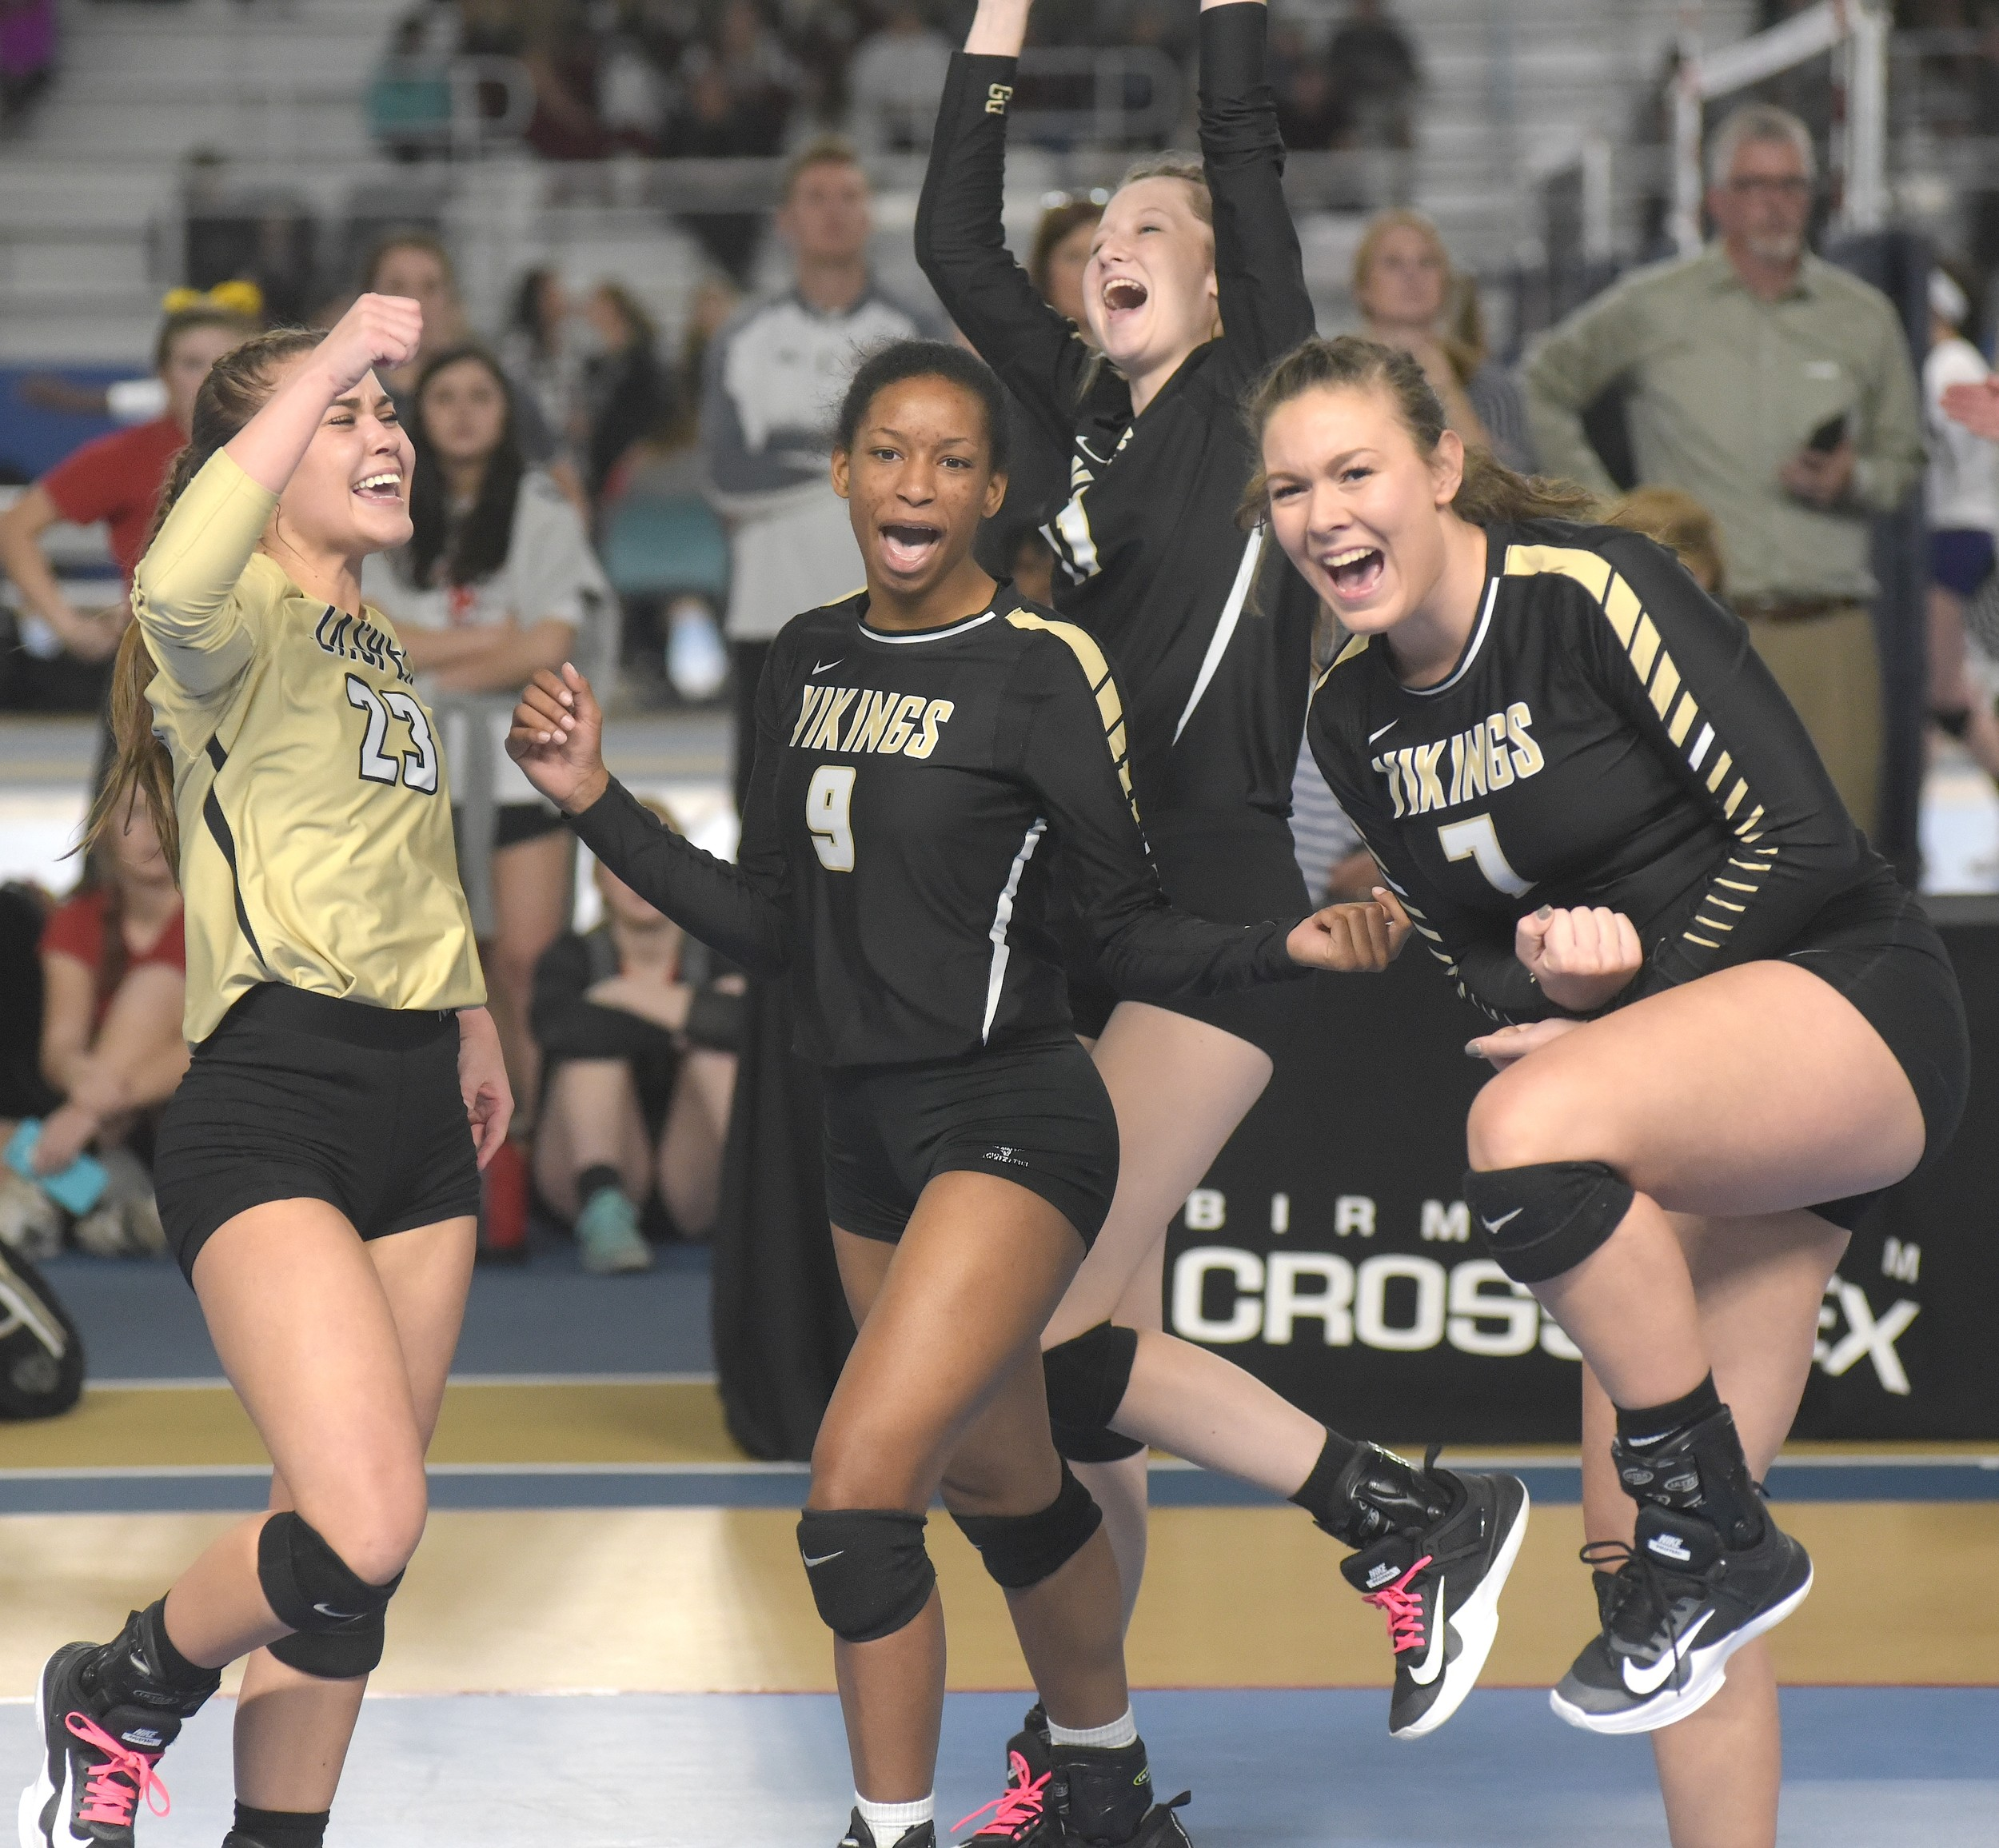 Jasper High School volleyball players, from left, Abby Trotter, Kelsey Shelton, Morgan McClendon and Khloe Kimbrell celebrate following the Vikings' victory over Helena at the State Volleyball Tournament Wednesday in Birmingham.